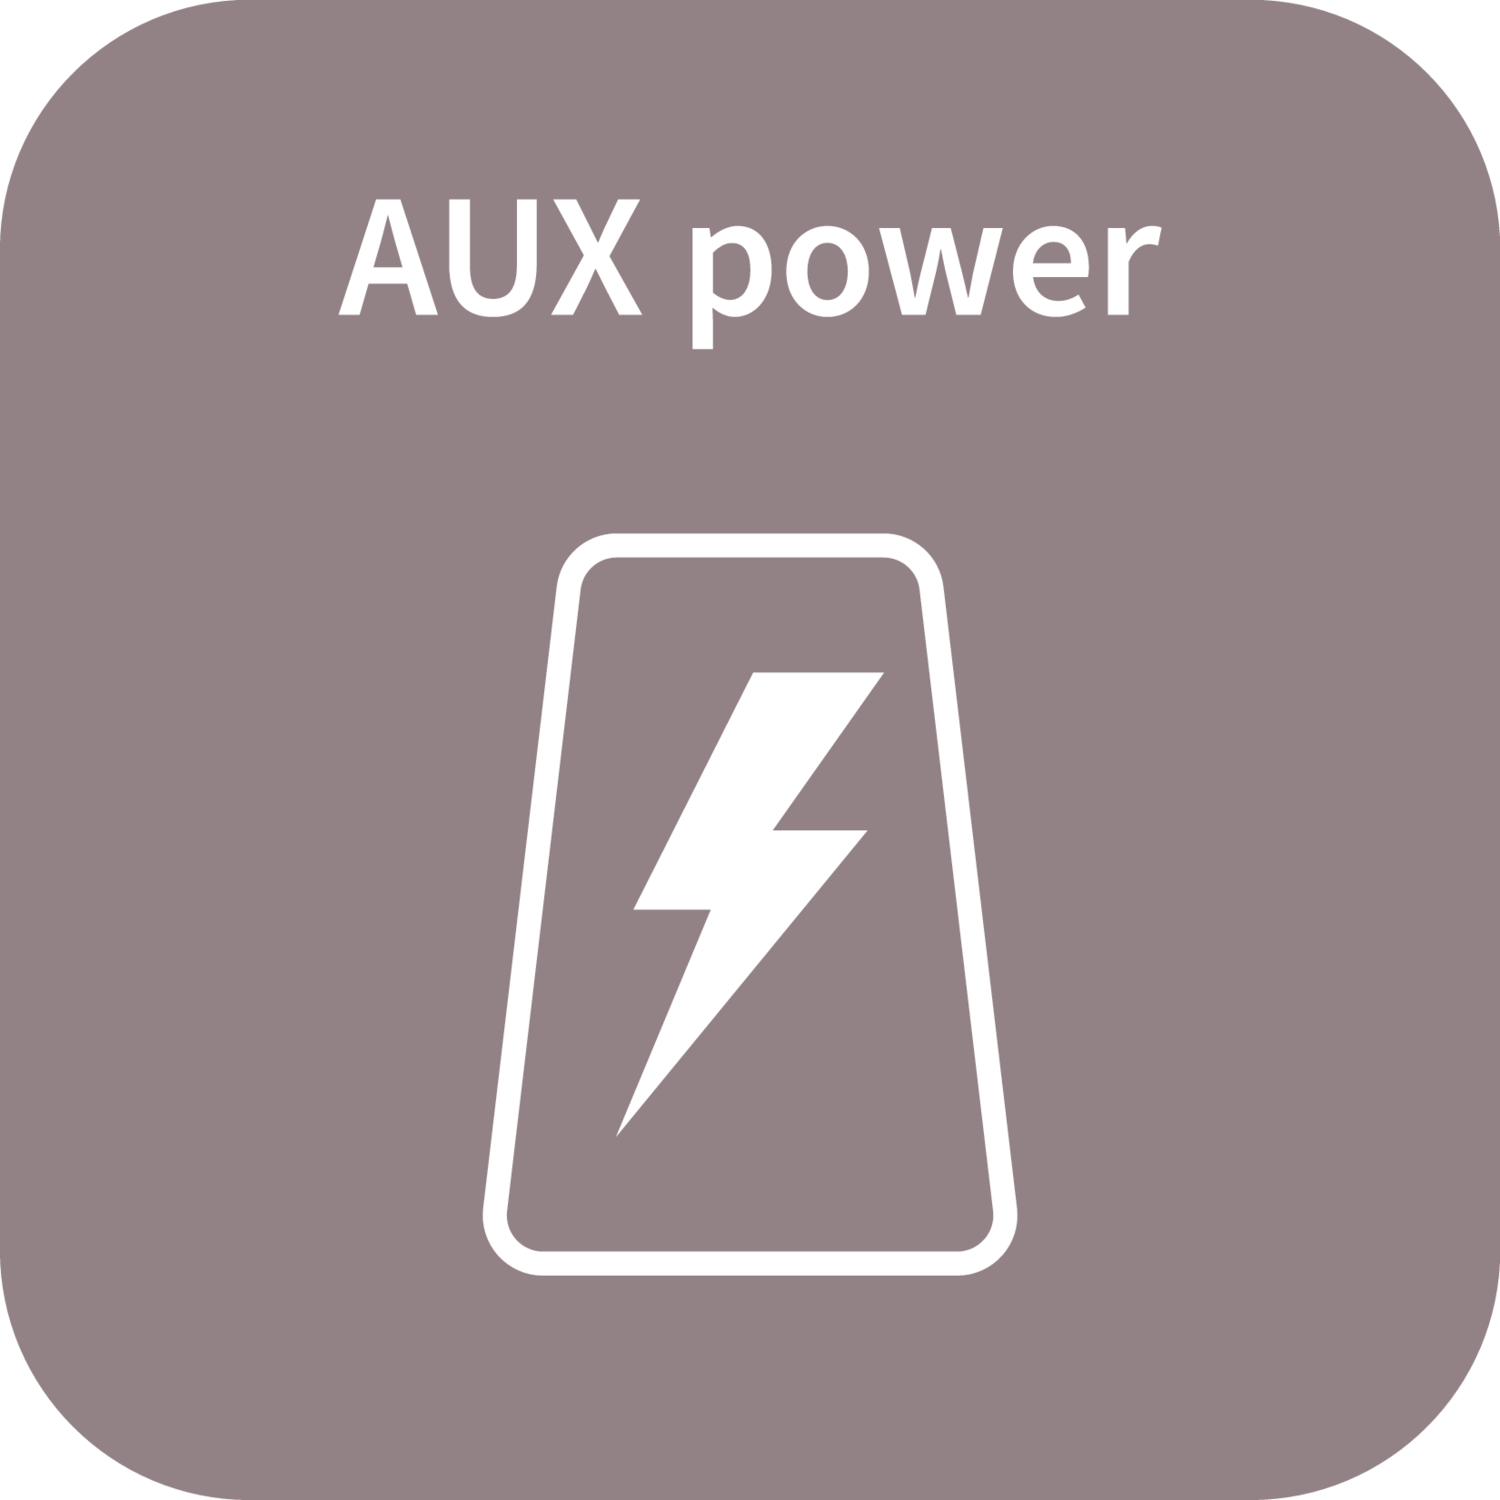 aux-power-icon